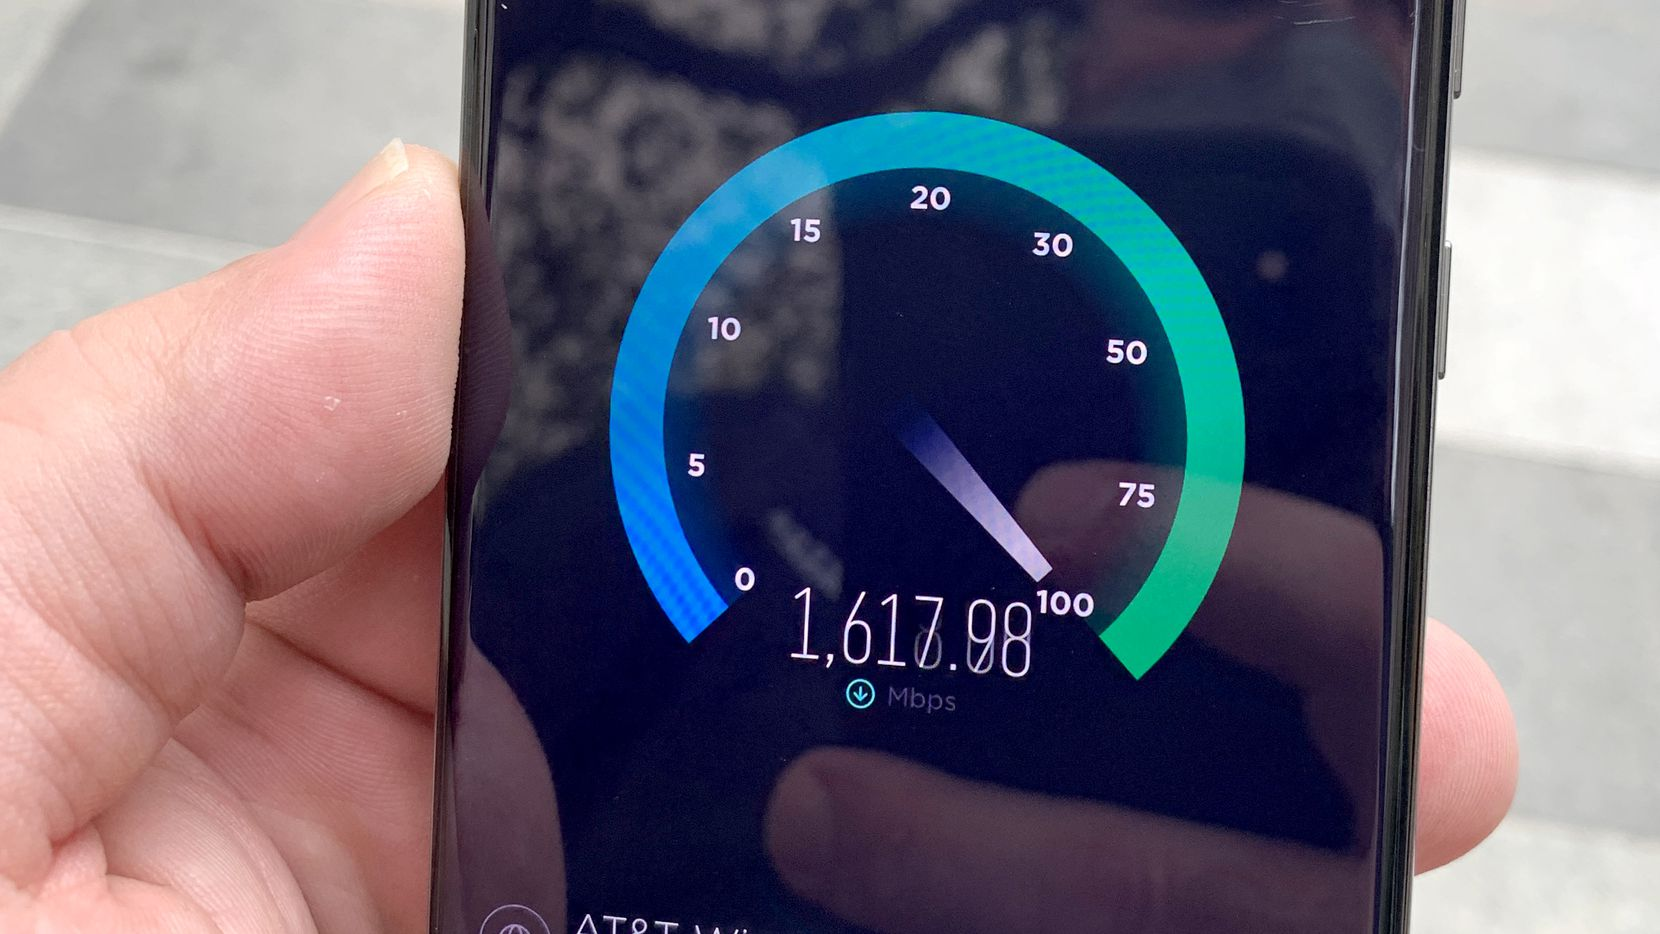 AT&T's mmWave 5G network is really fast when you find it.